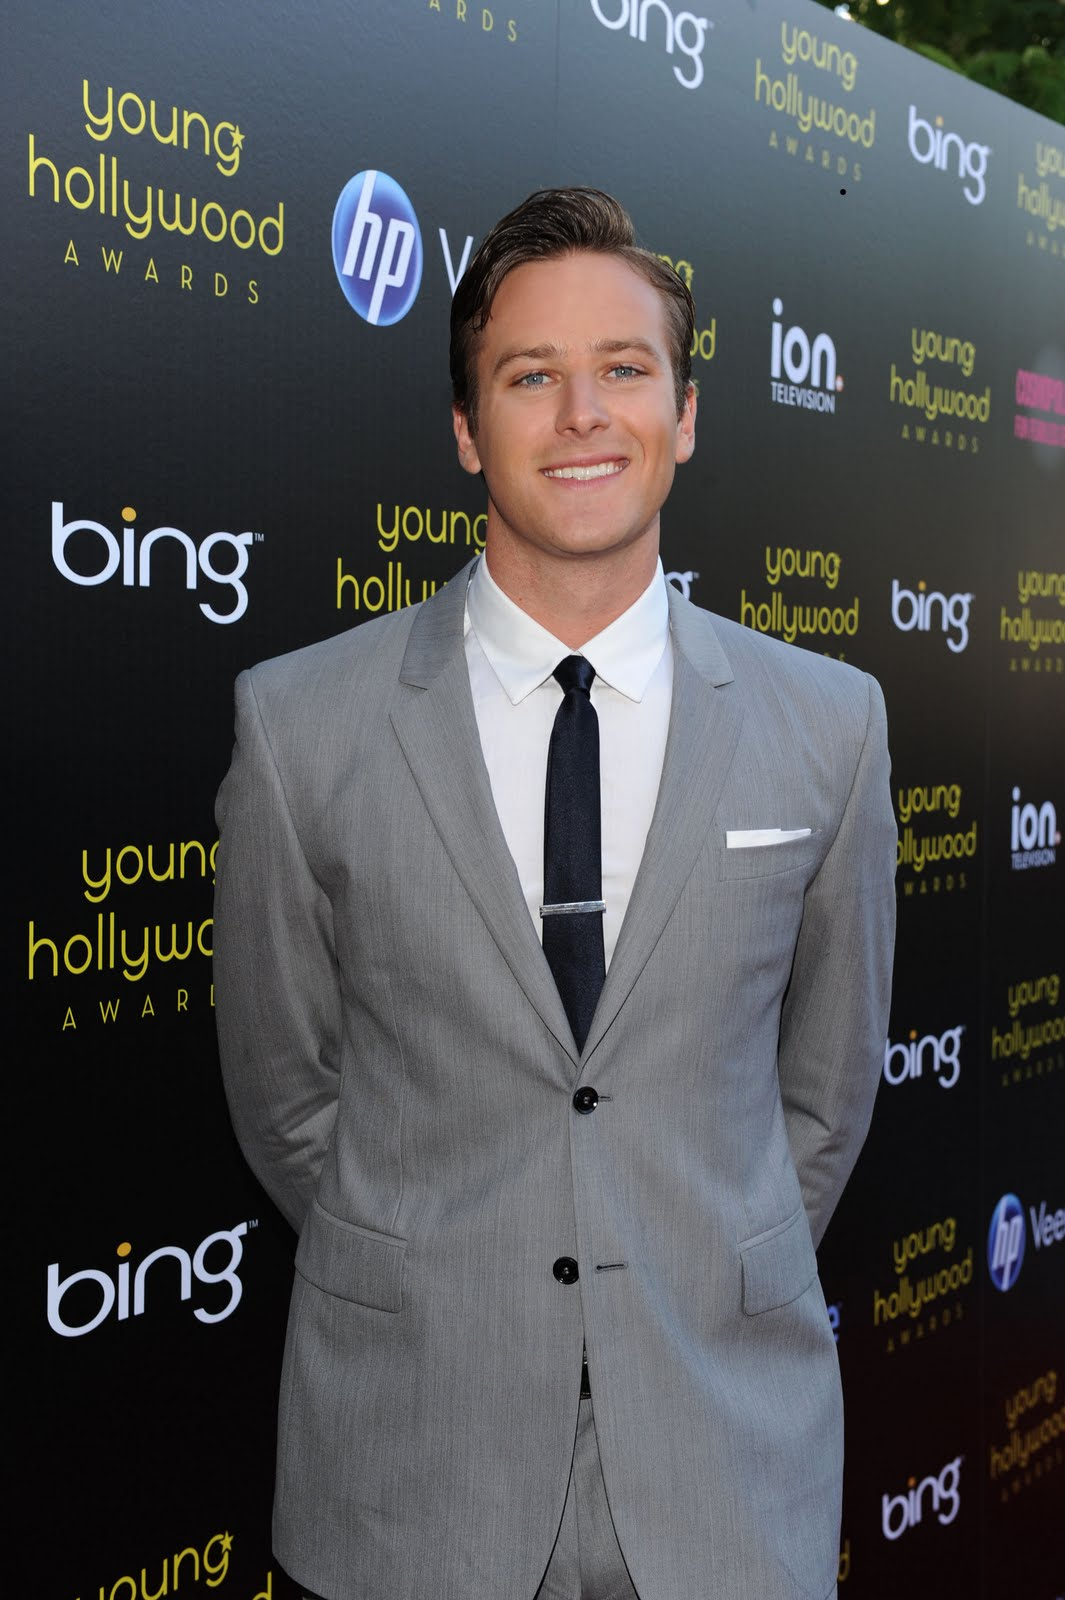 Armie Hammer x Young Hollywood Awards | ShoppingandInfo.com